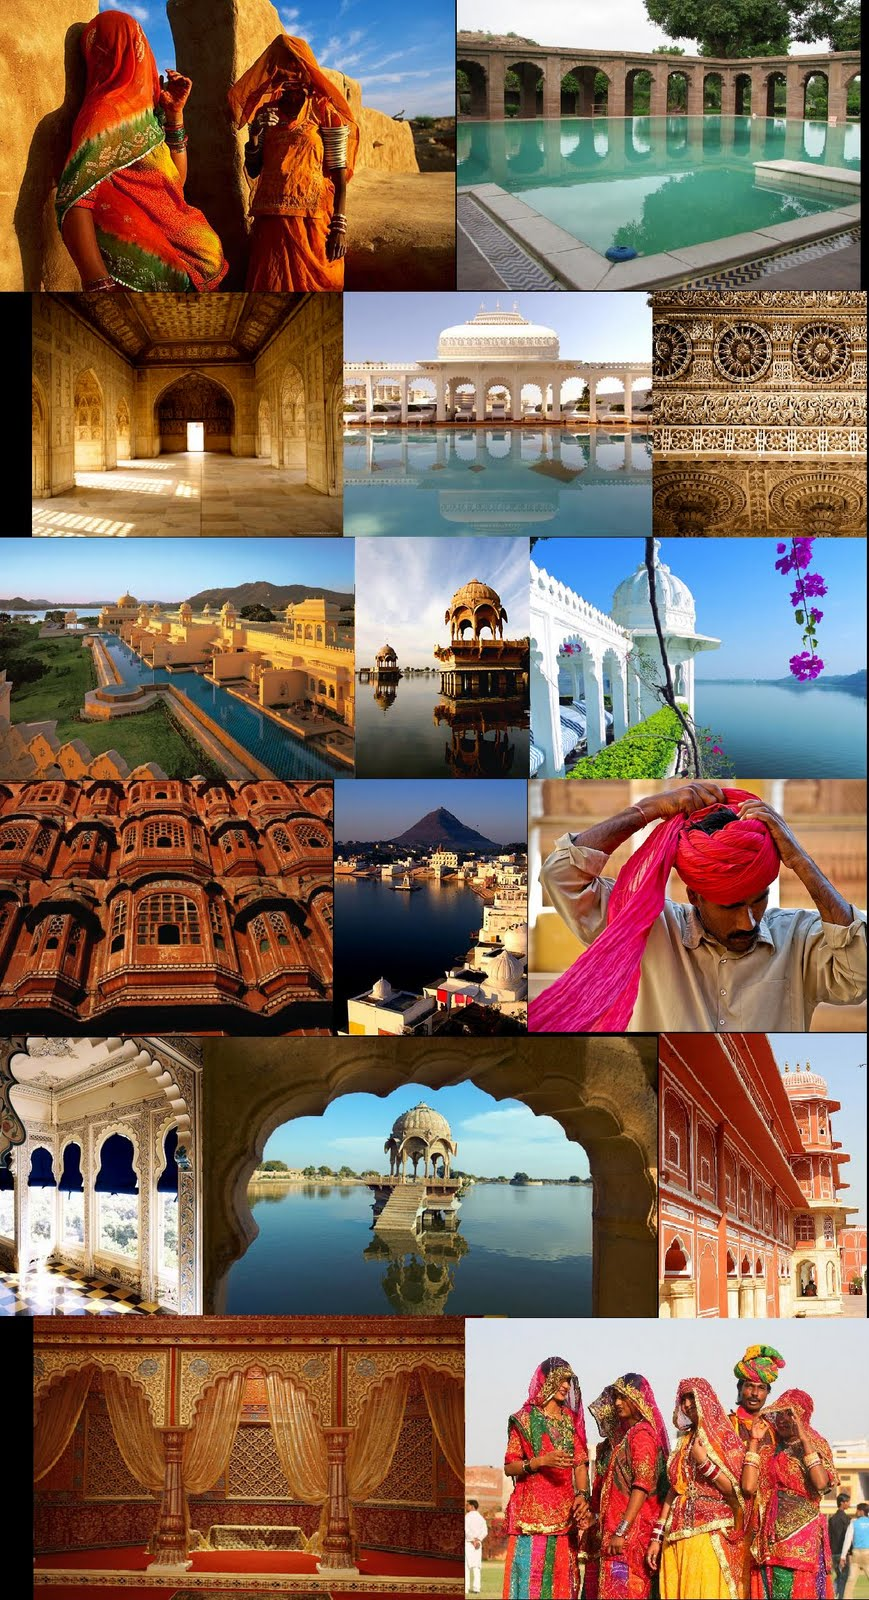 rajasthan collage